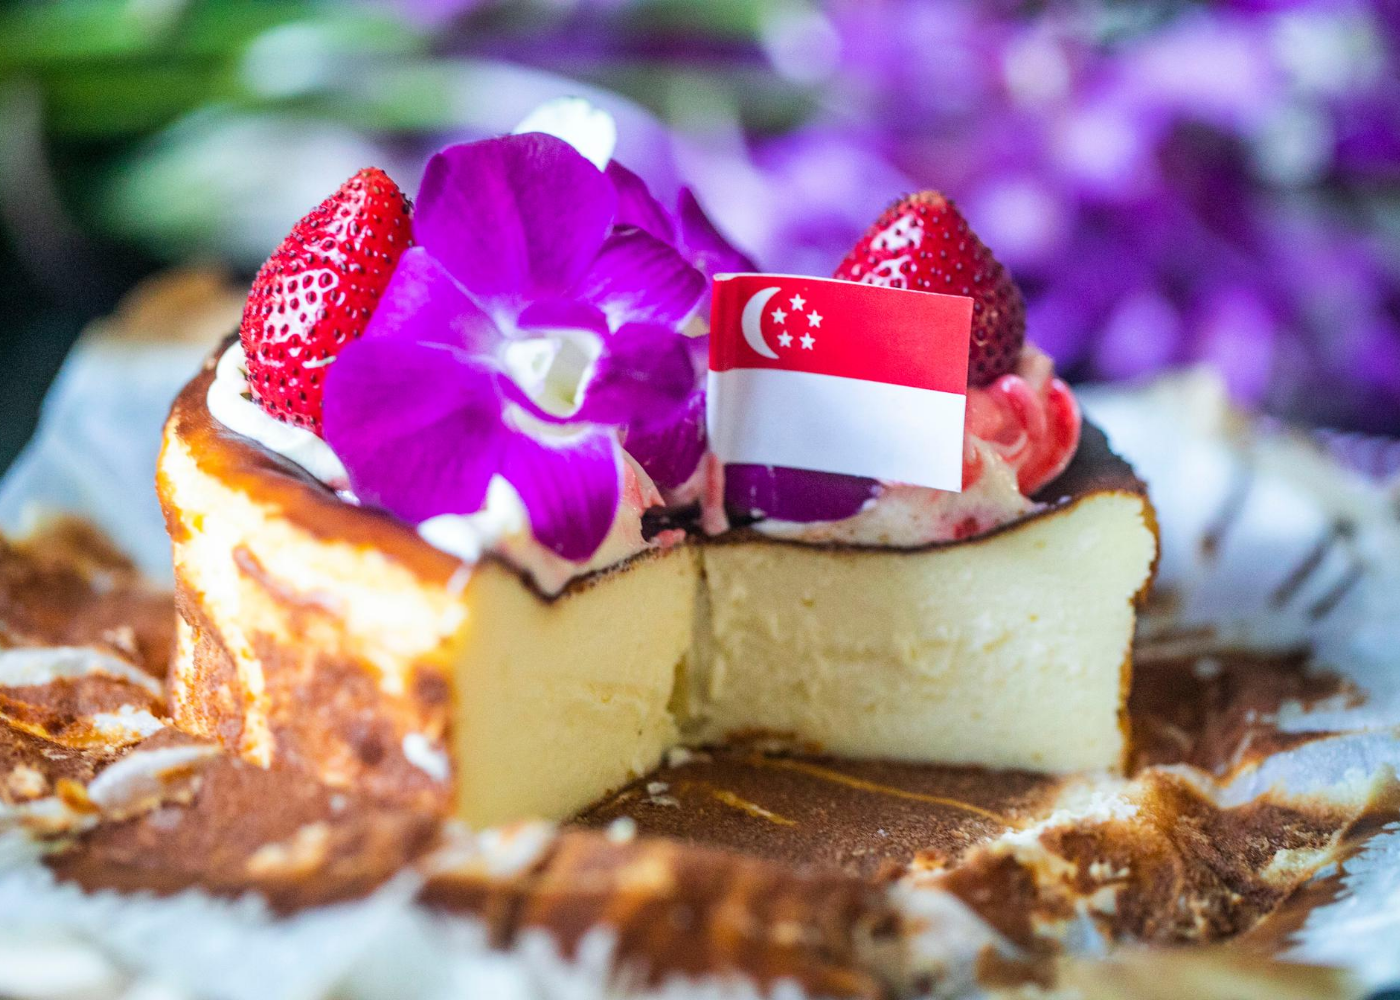 We're giving away 10 burnt cheesecakes for National Day! Here's how to win